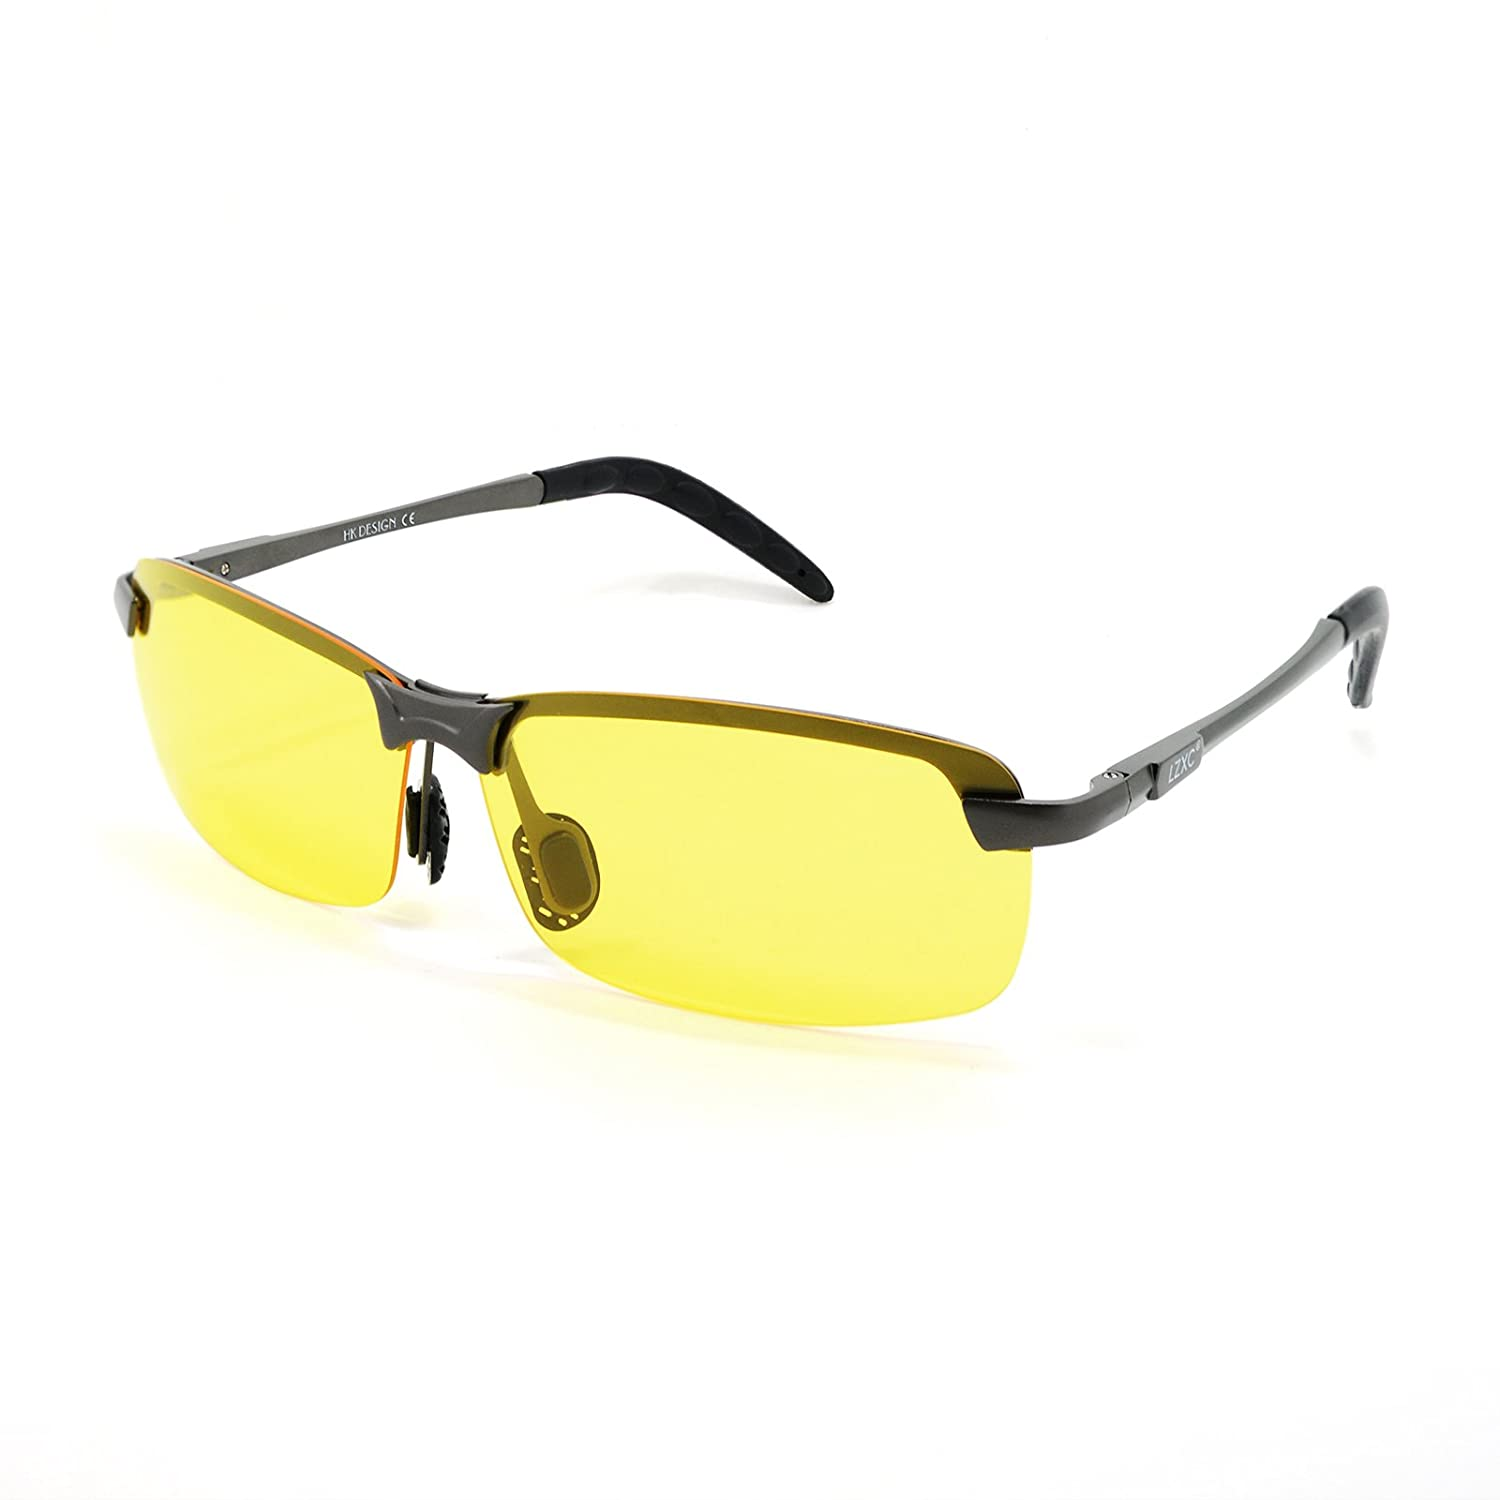 1f3461c8a42fc LZXC Gun Color Frame AL-MG Temple Night Driving Polarized Sunglasses Yello  Lens